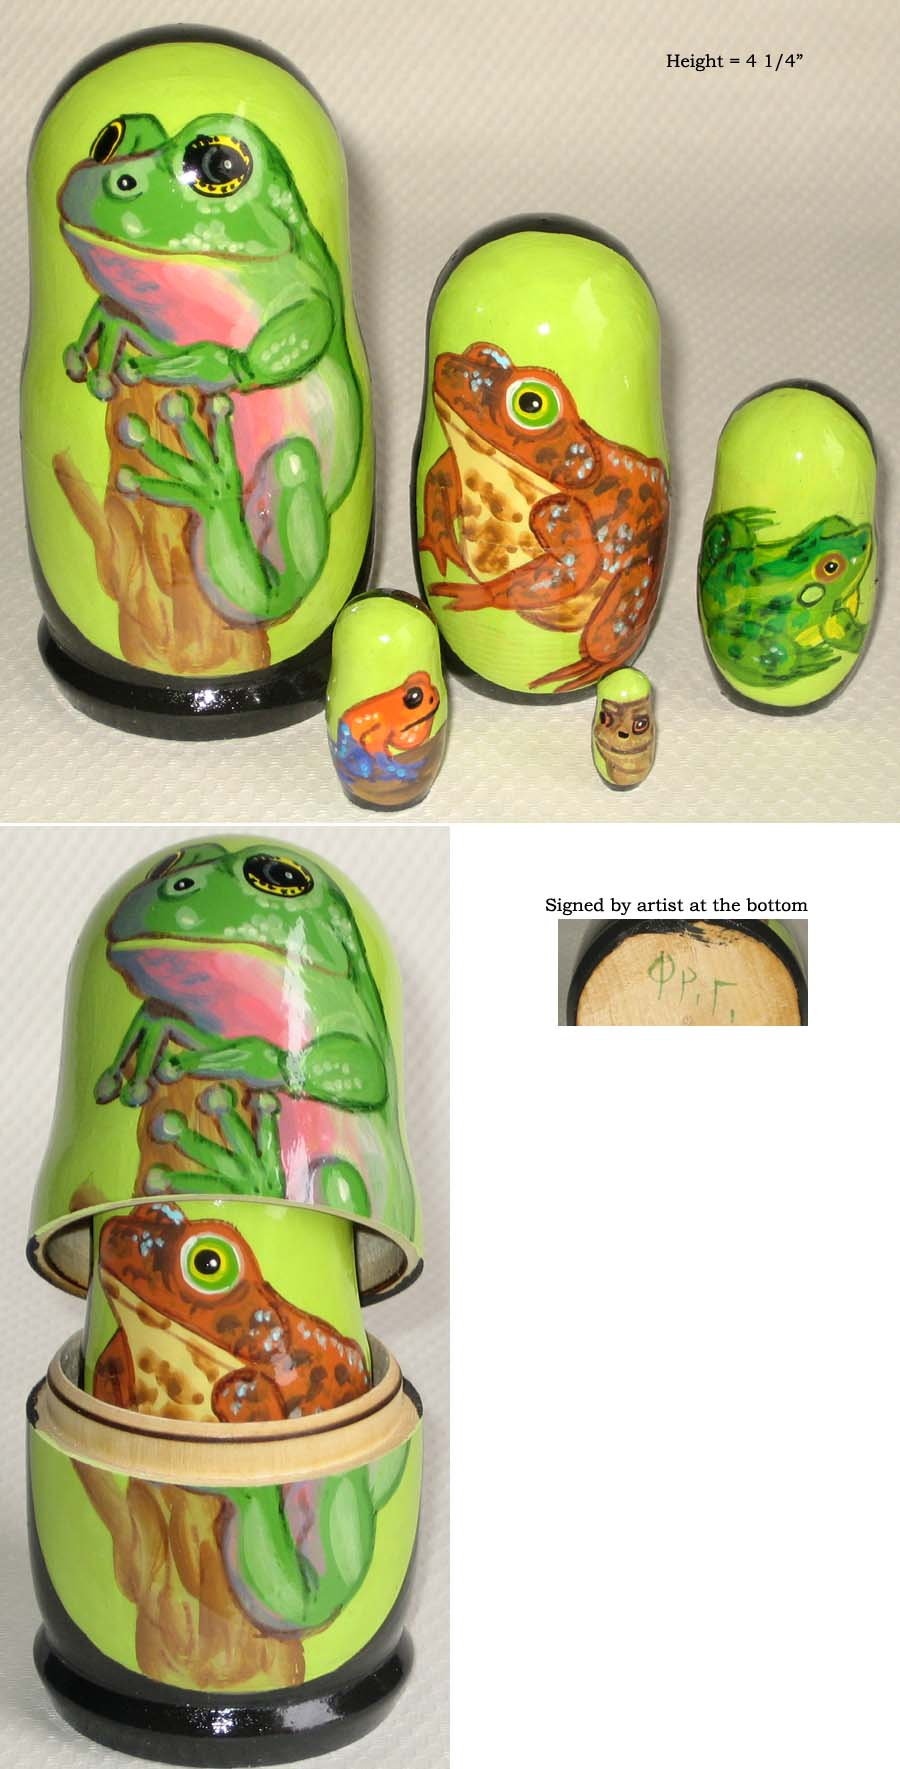 newlookat com russian nesting dolls and classical music cds by